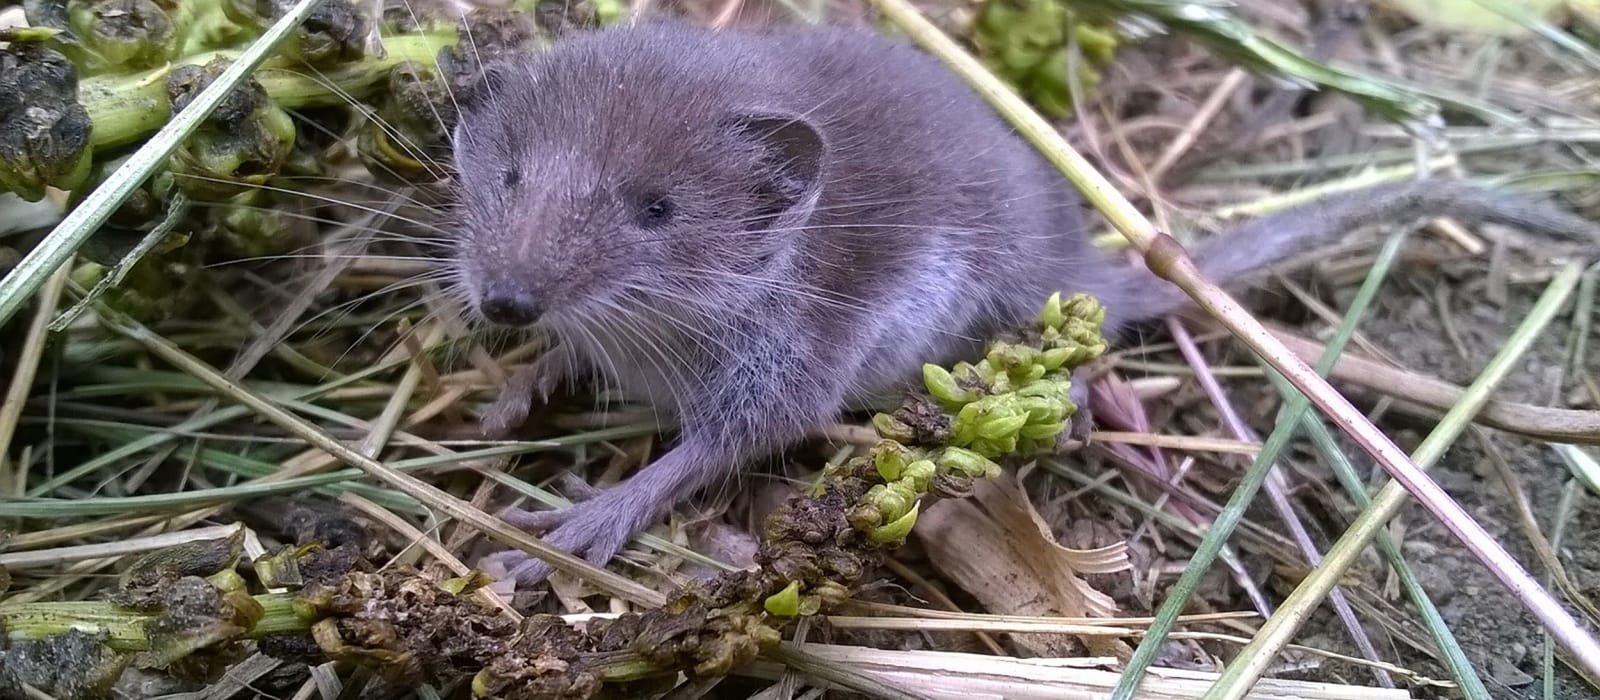 Lesser white-toothed shrew (Scilly Shrew)